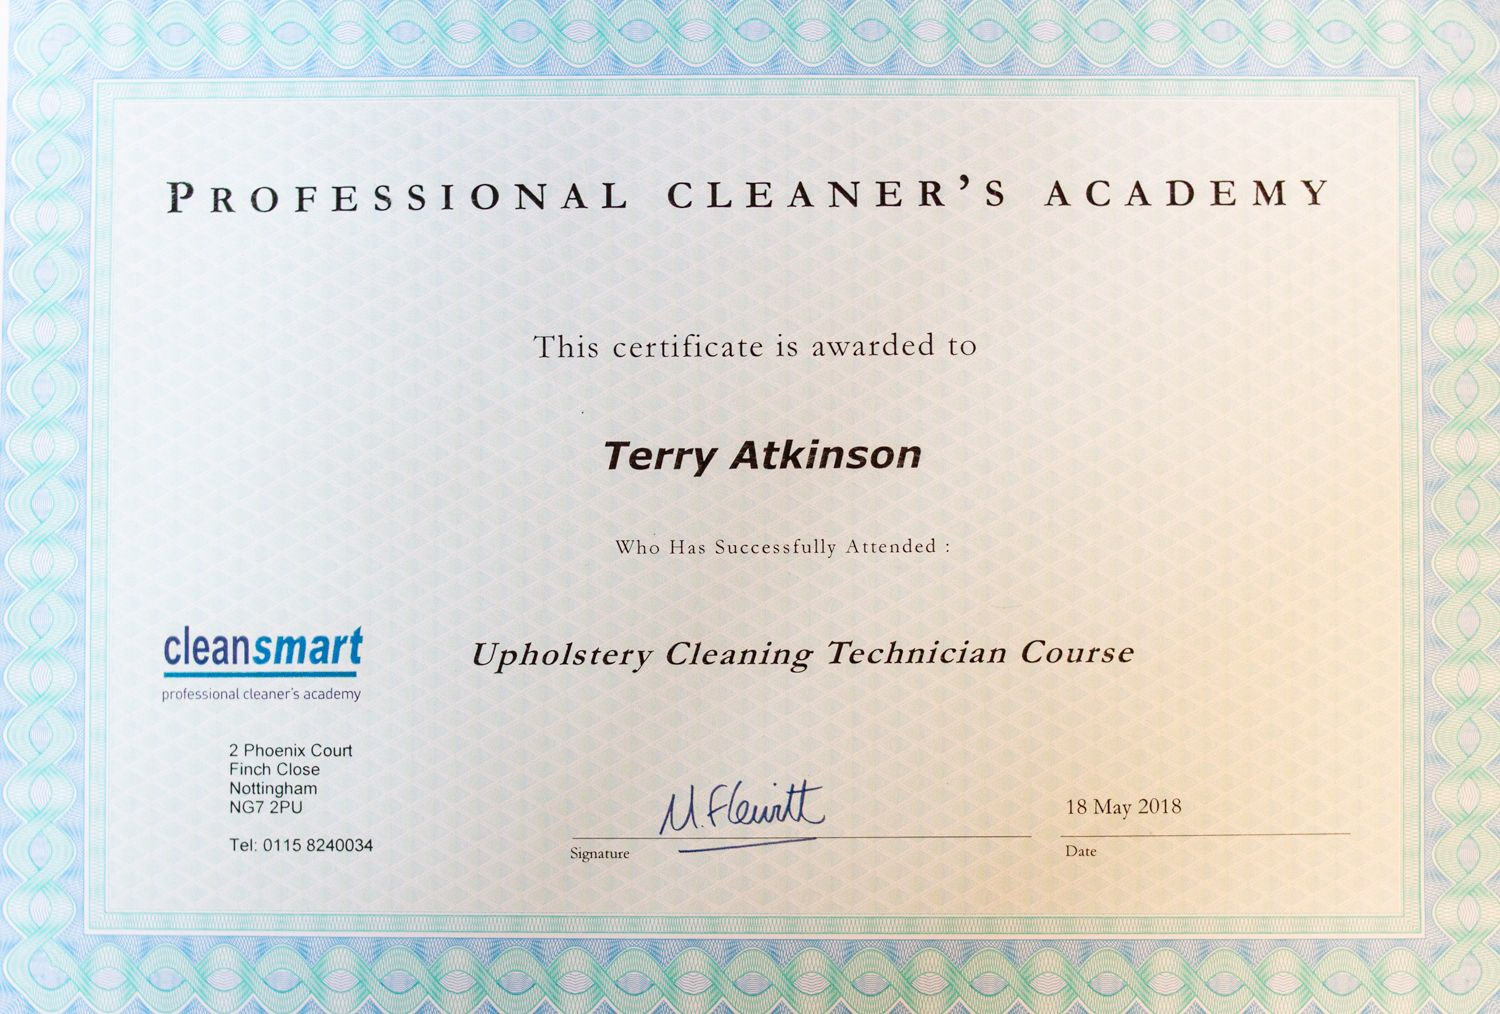 Professional upholstery cleaning qualification